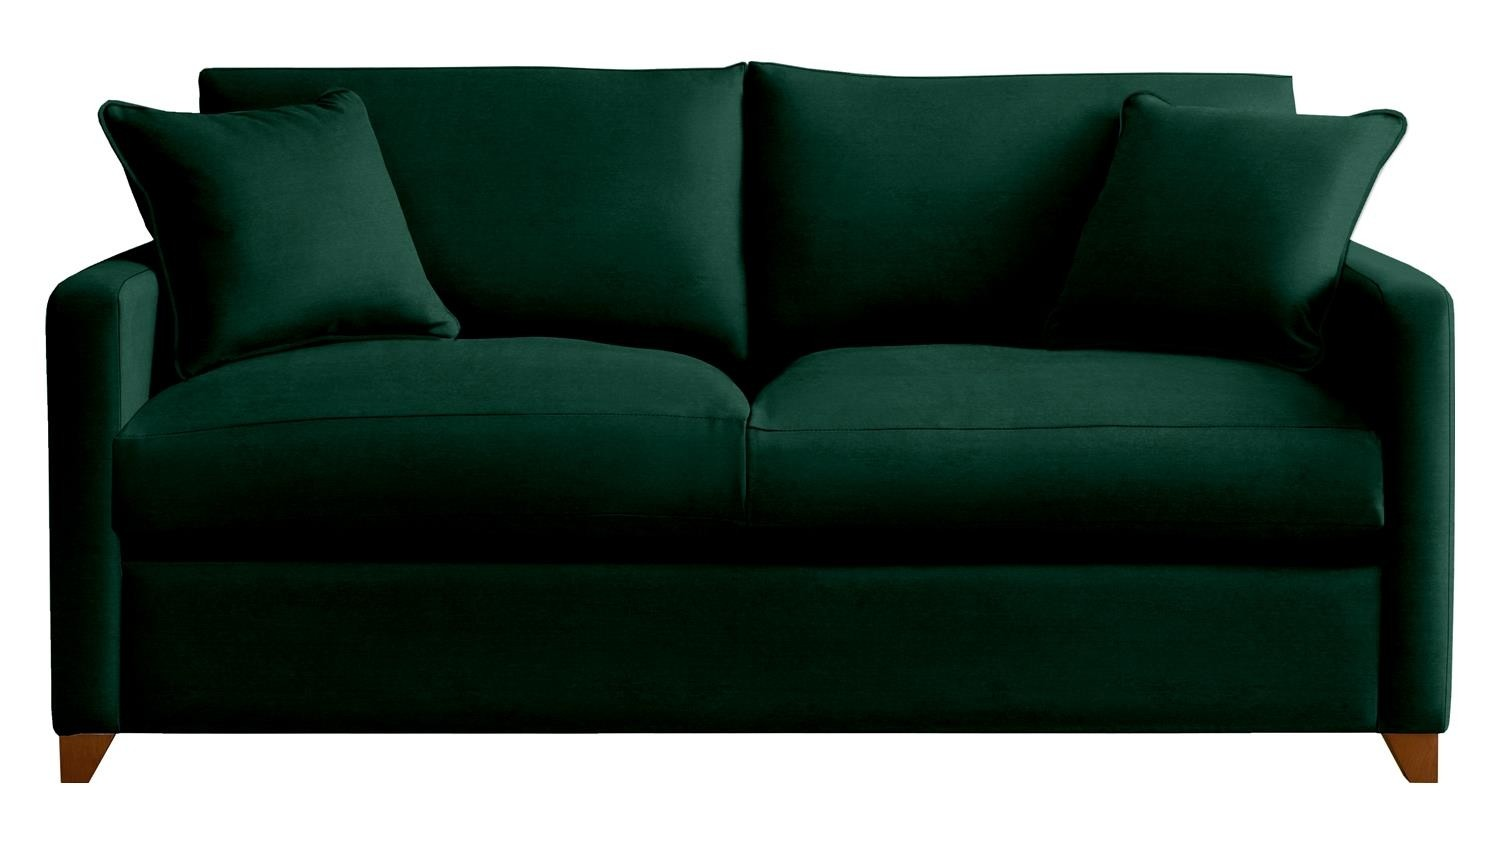 The Foxham 2 Seater Sofa Bed